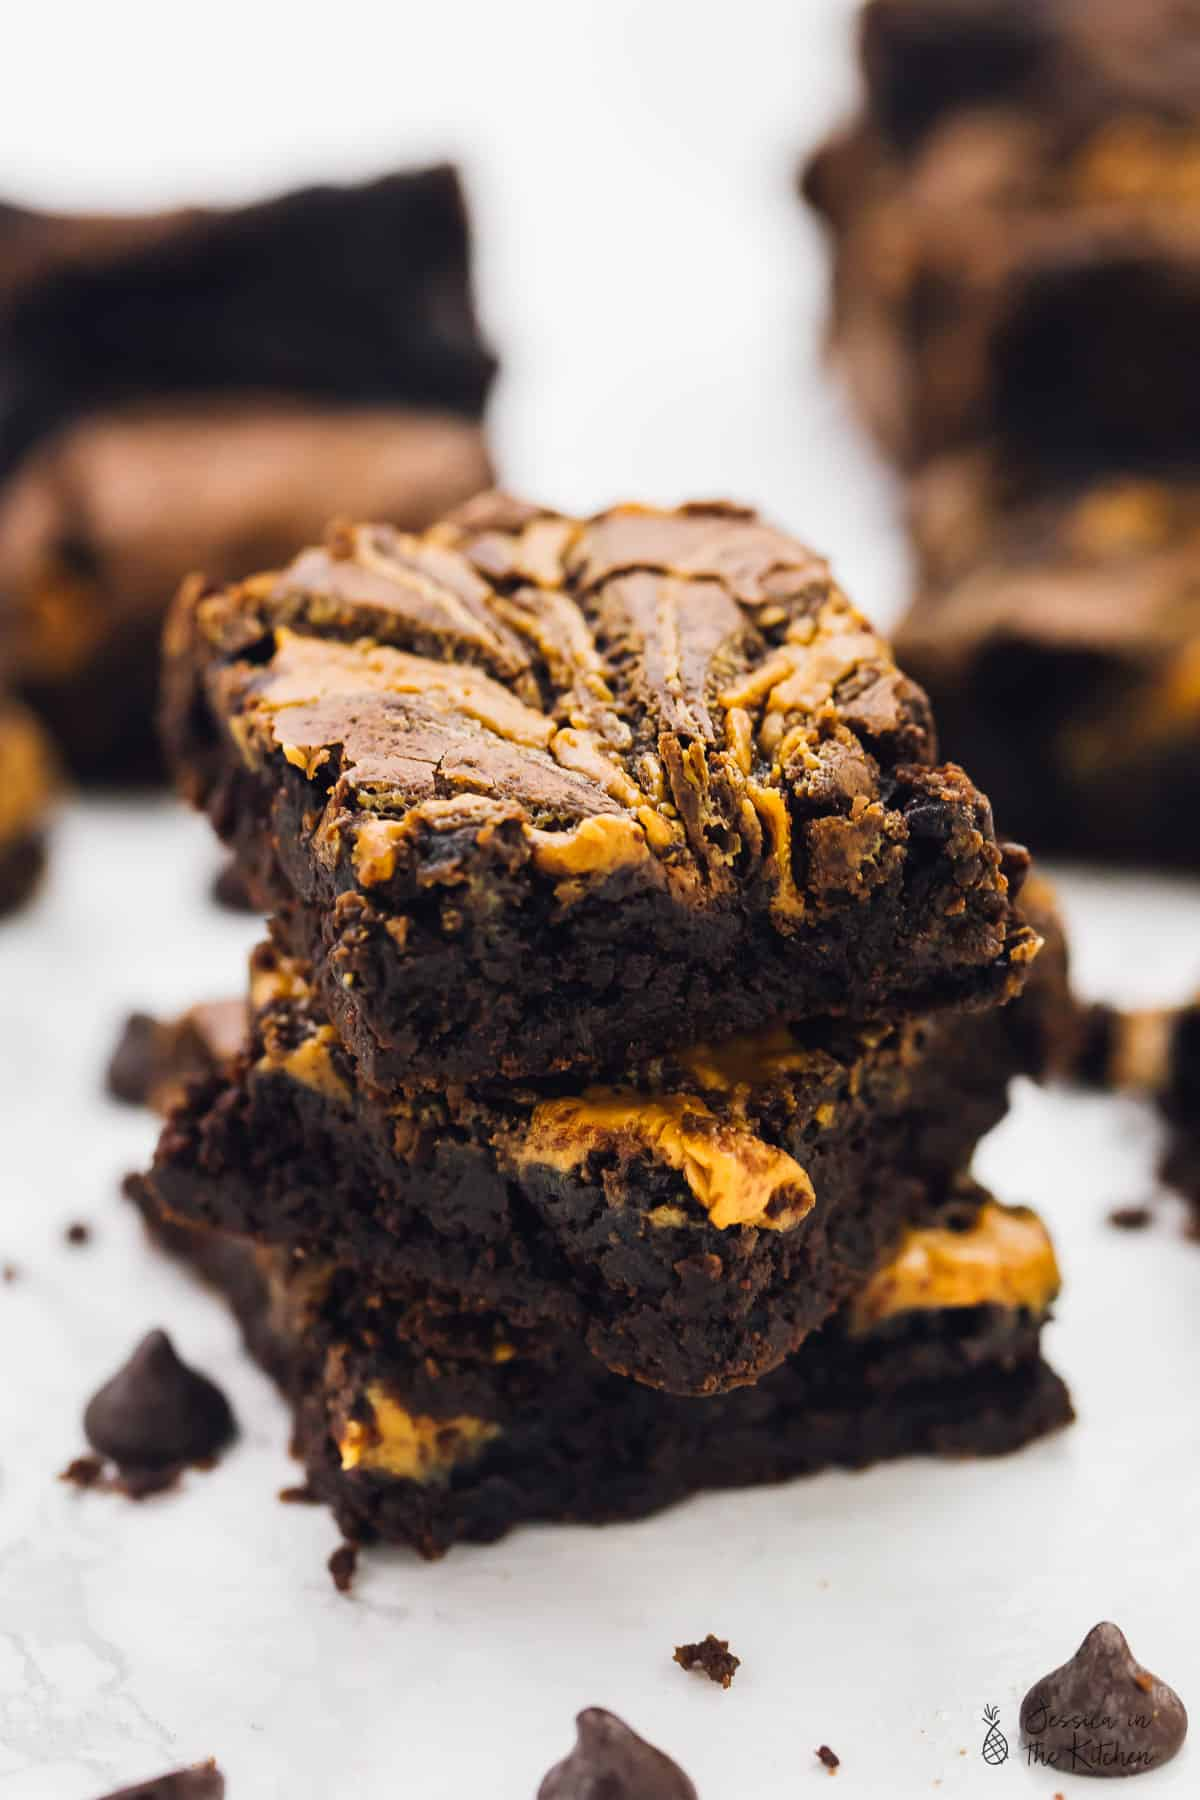 These Vegan Chocolate Peanut Butter Swirl Brownies are beyond addictive! They are chewy, fudgy, rich in chocolate and peanut butter and so easy to make!